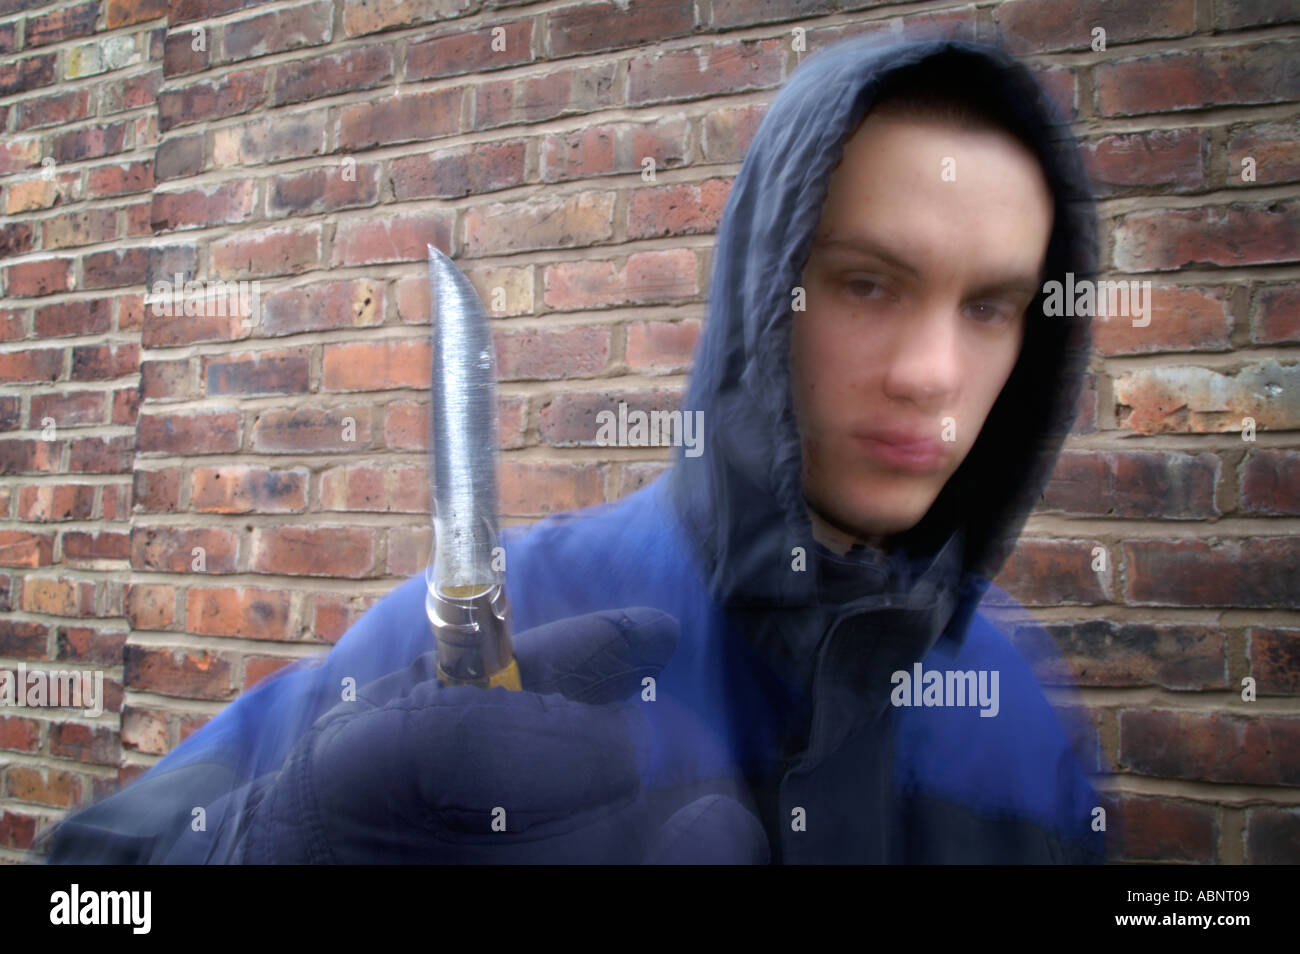 Hoody with knife 2 - Stock Image